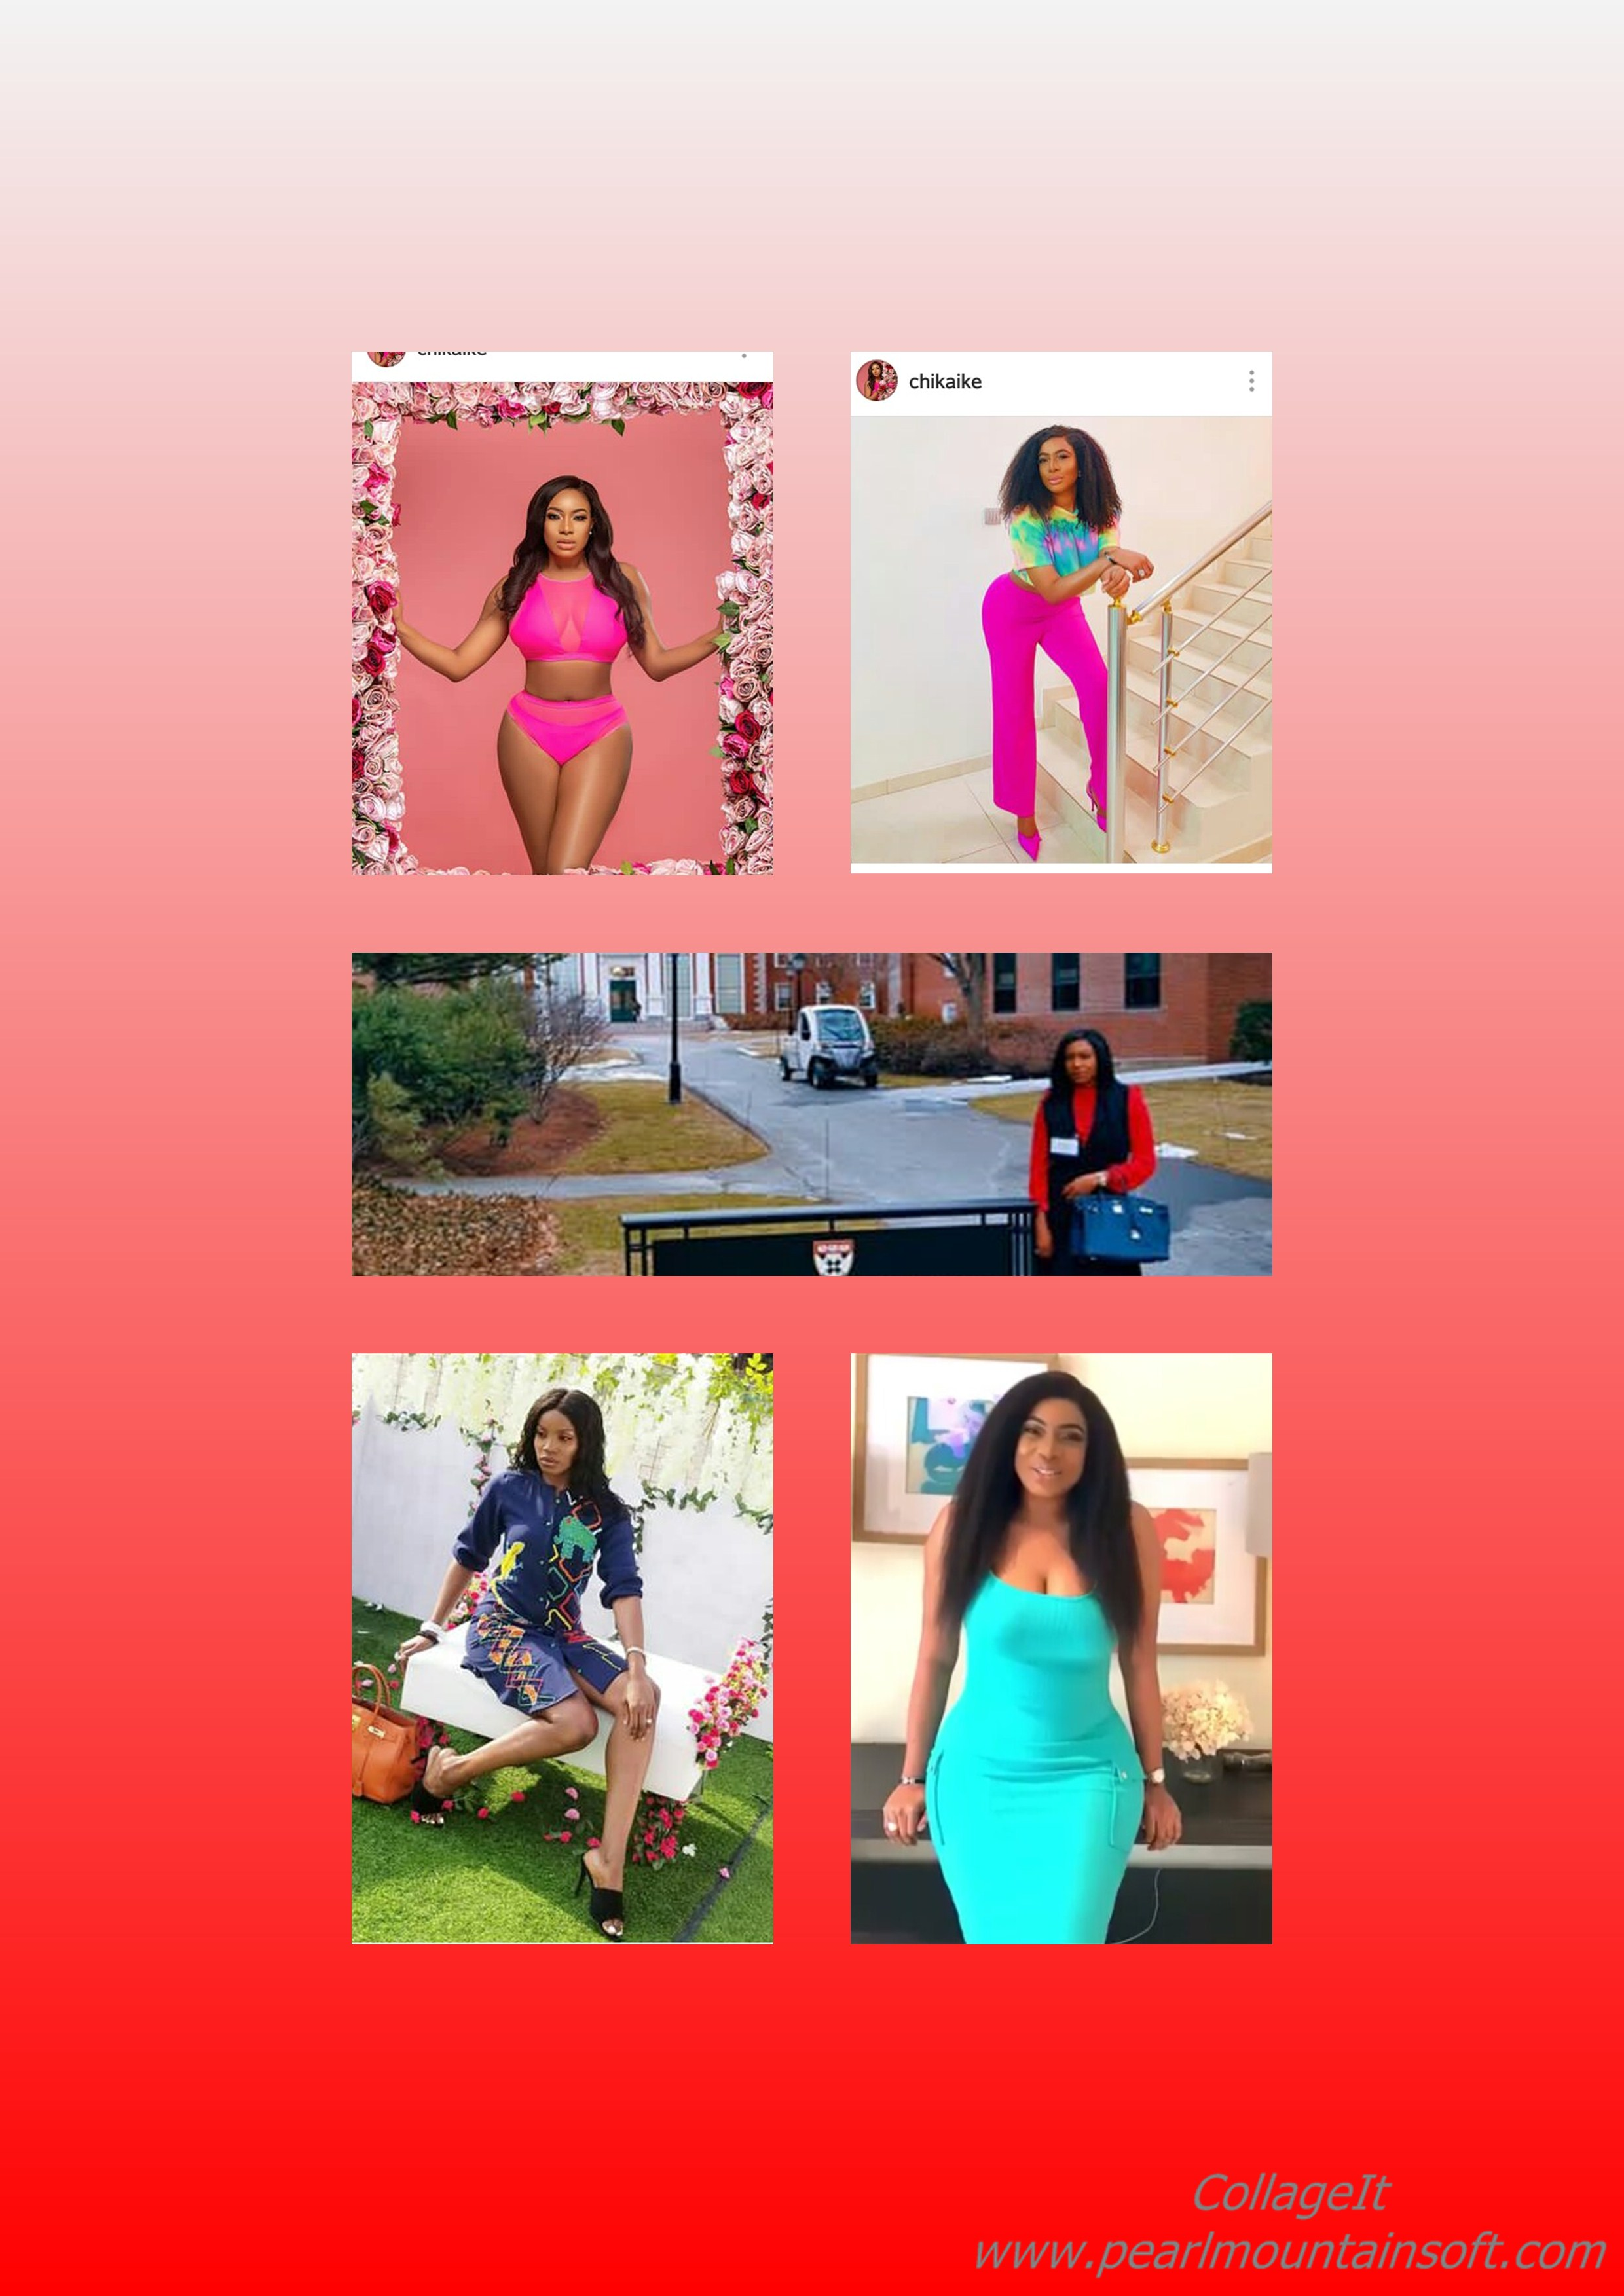 CHIKA IKE'S PICTURE CRAZE FOR THE WEEK: Blazing, Sexy, Weird, Modest or Something else?